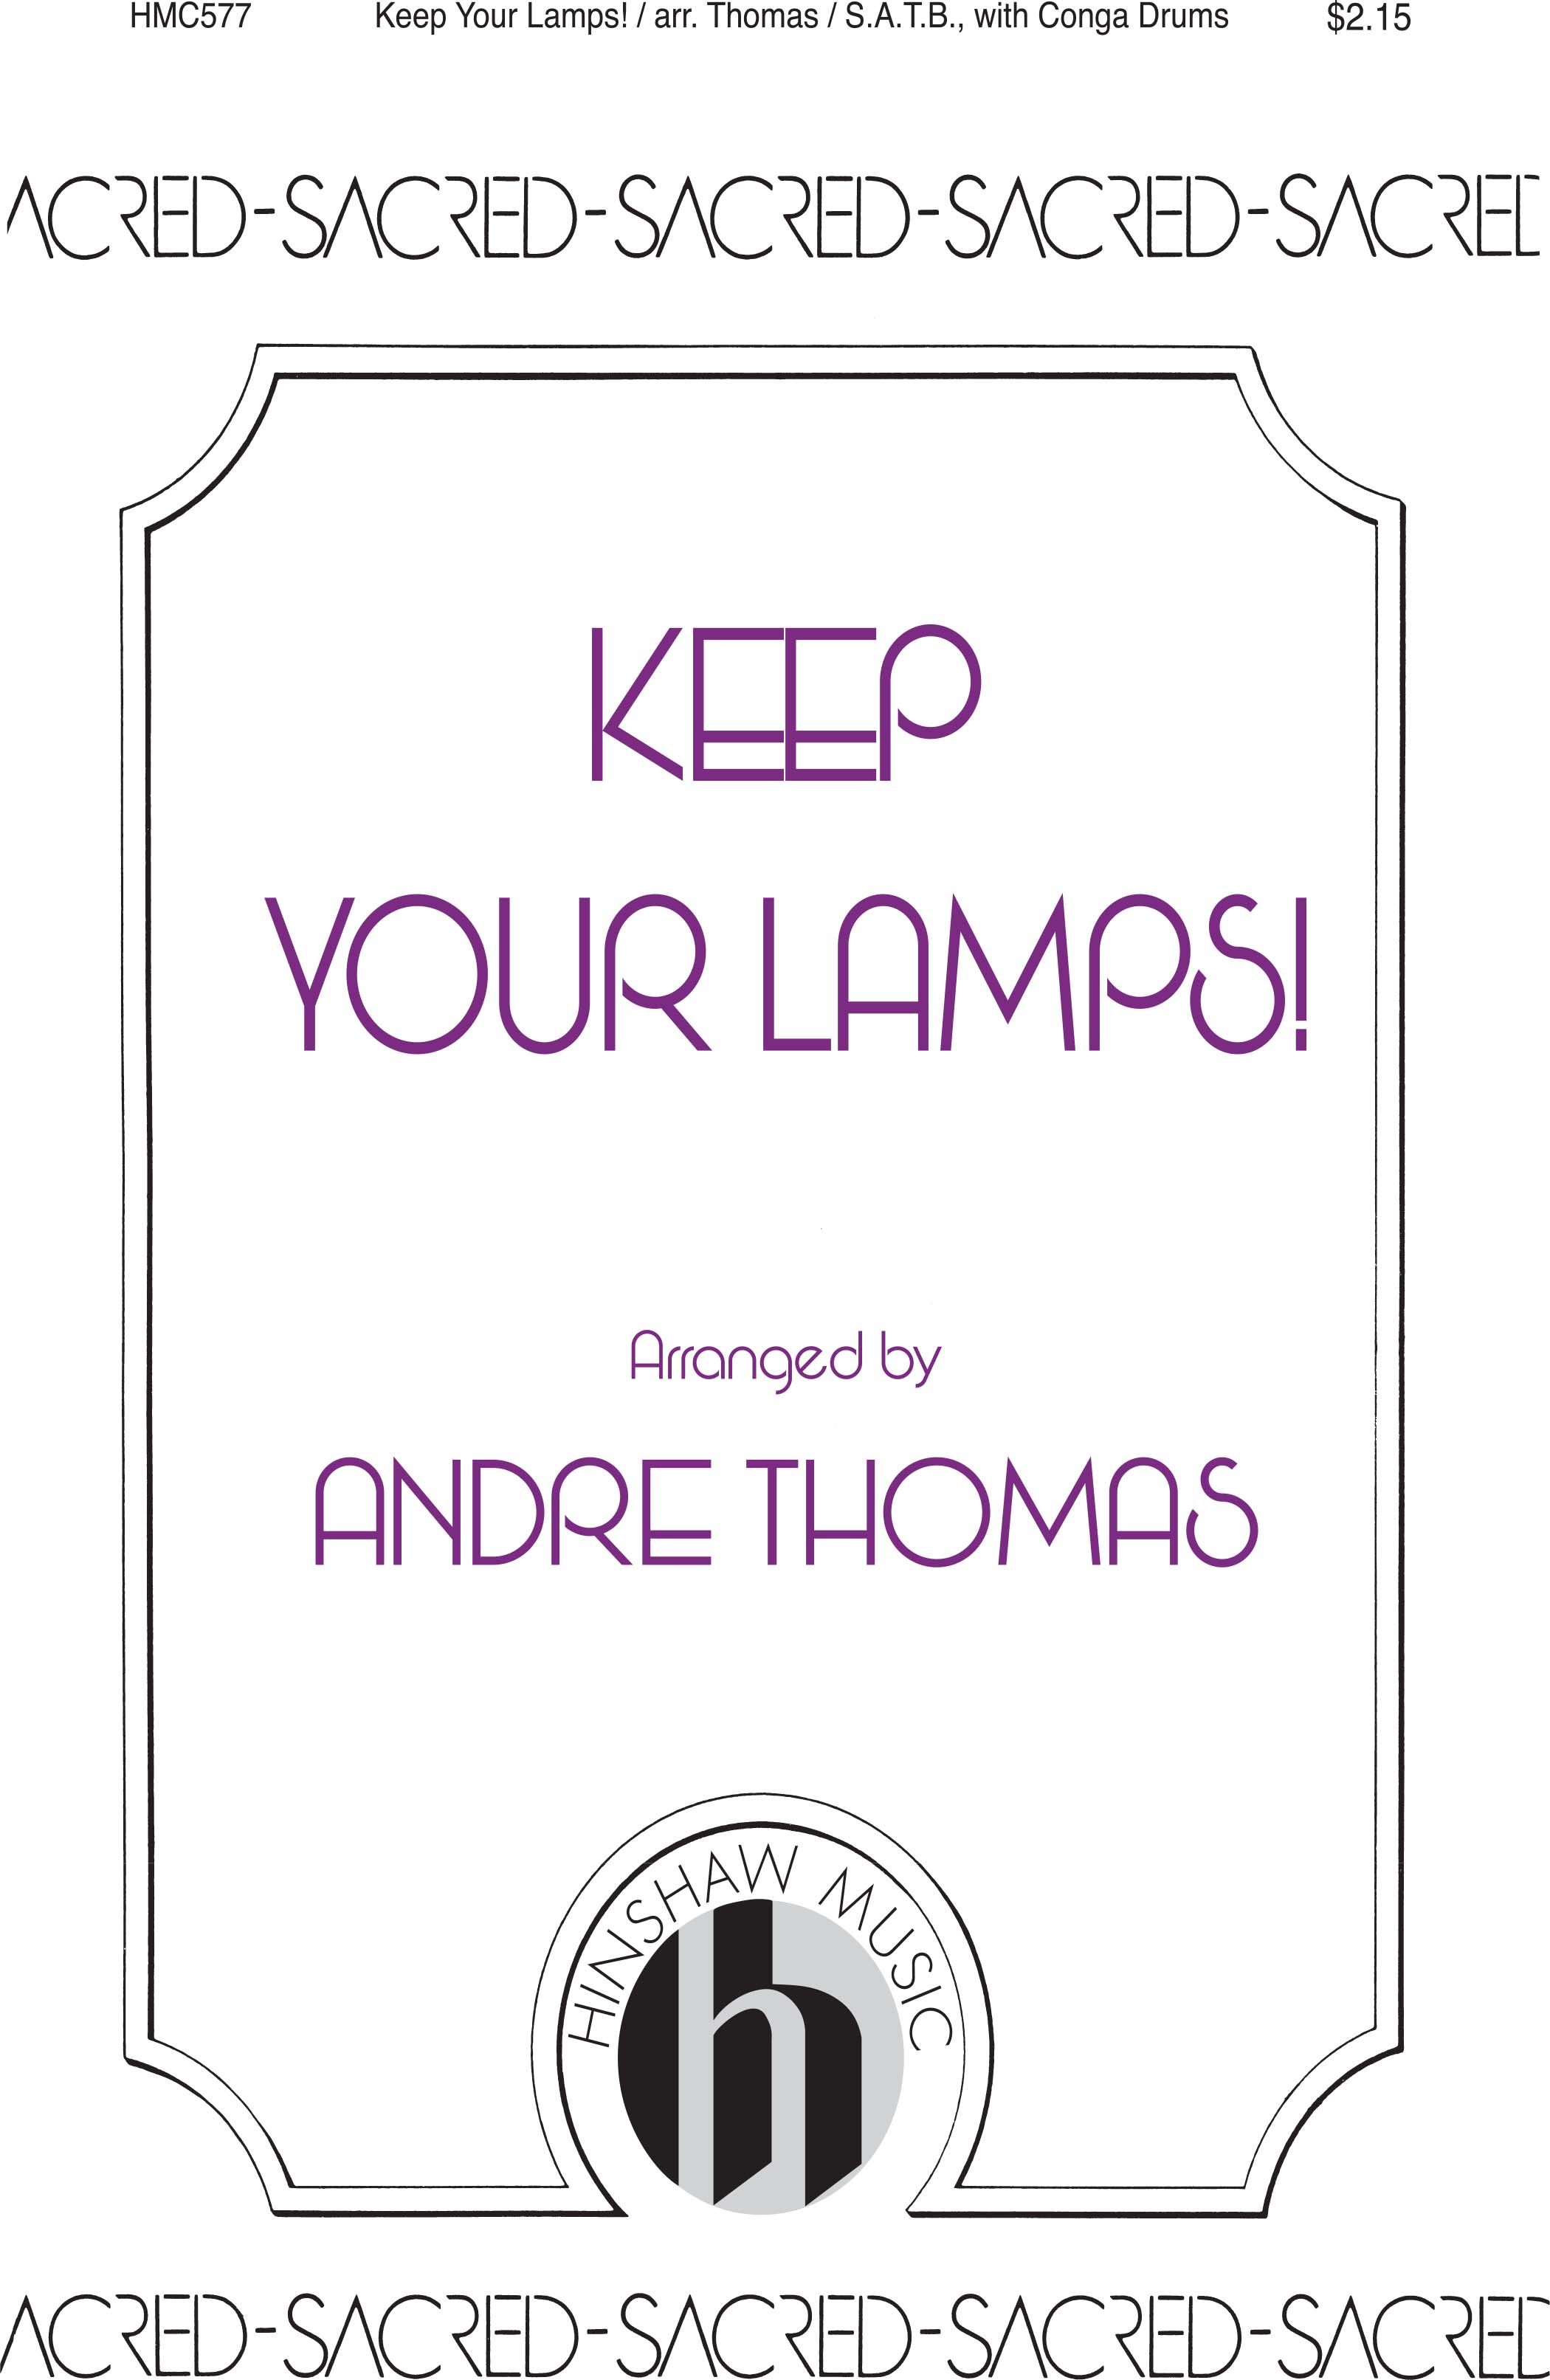 Keep Your Lamps!